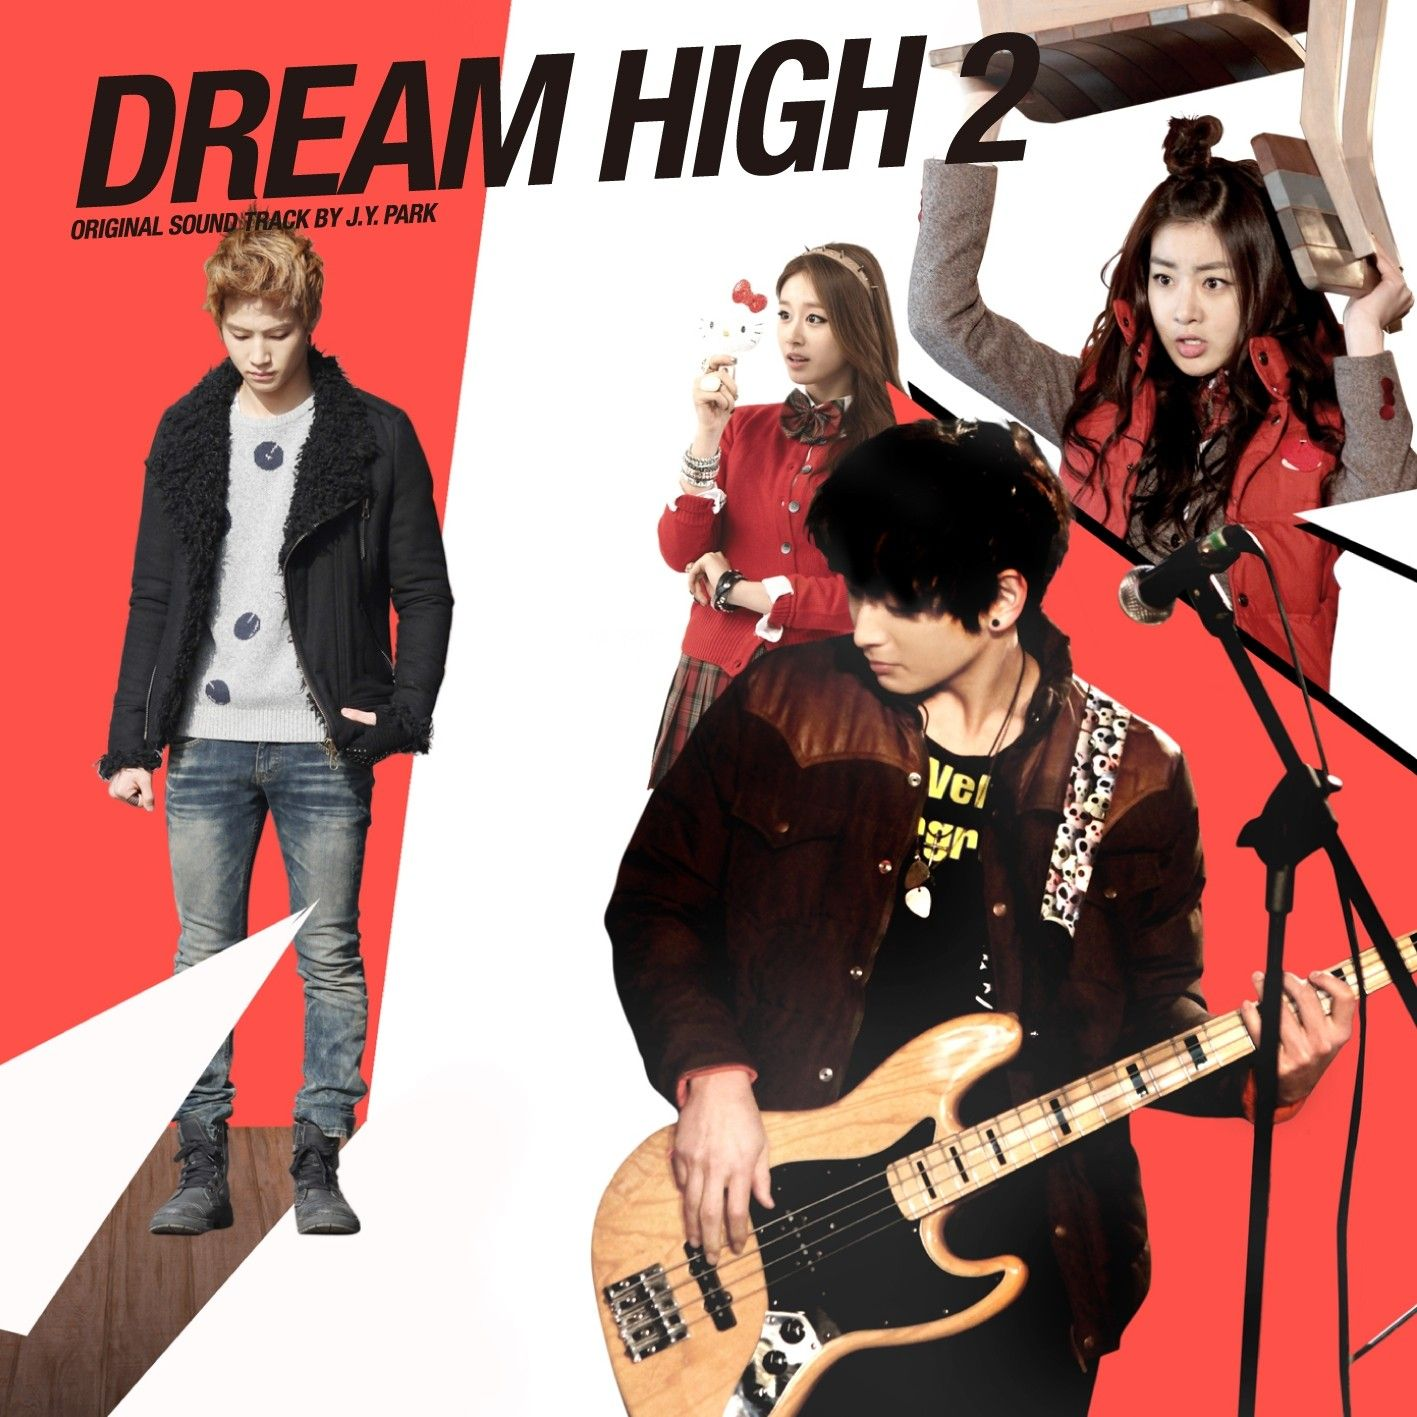 [Album] V.A. - Dream High 2 OST